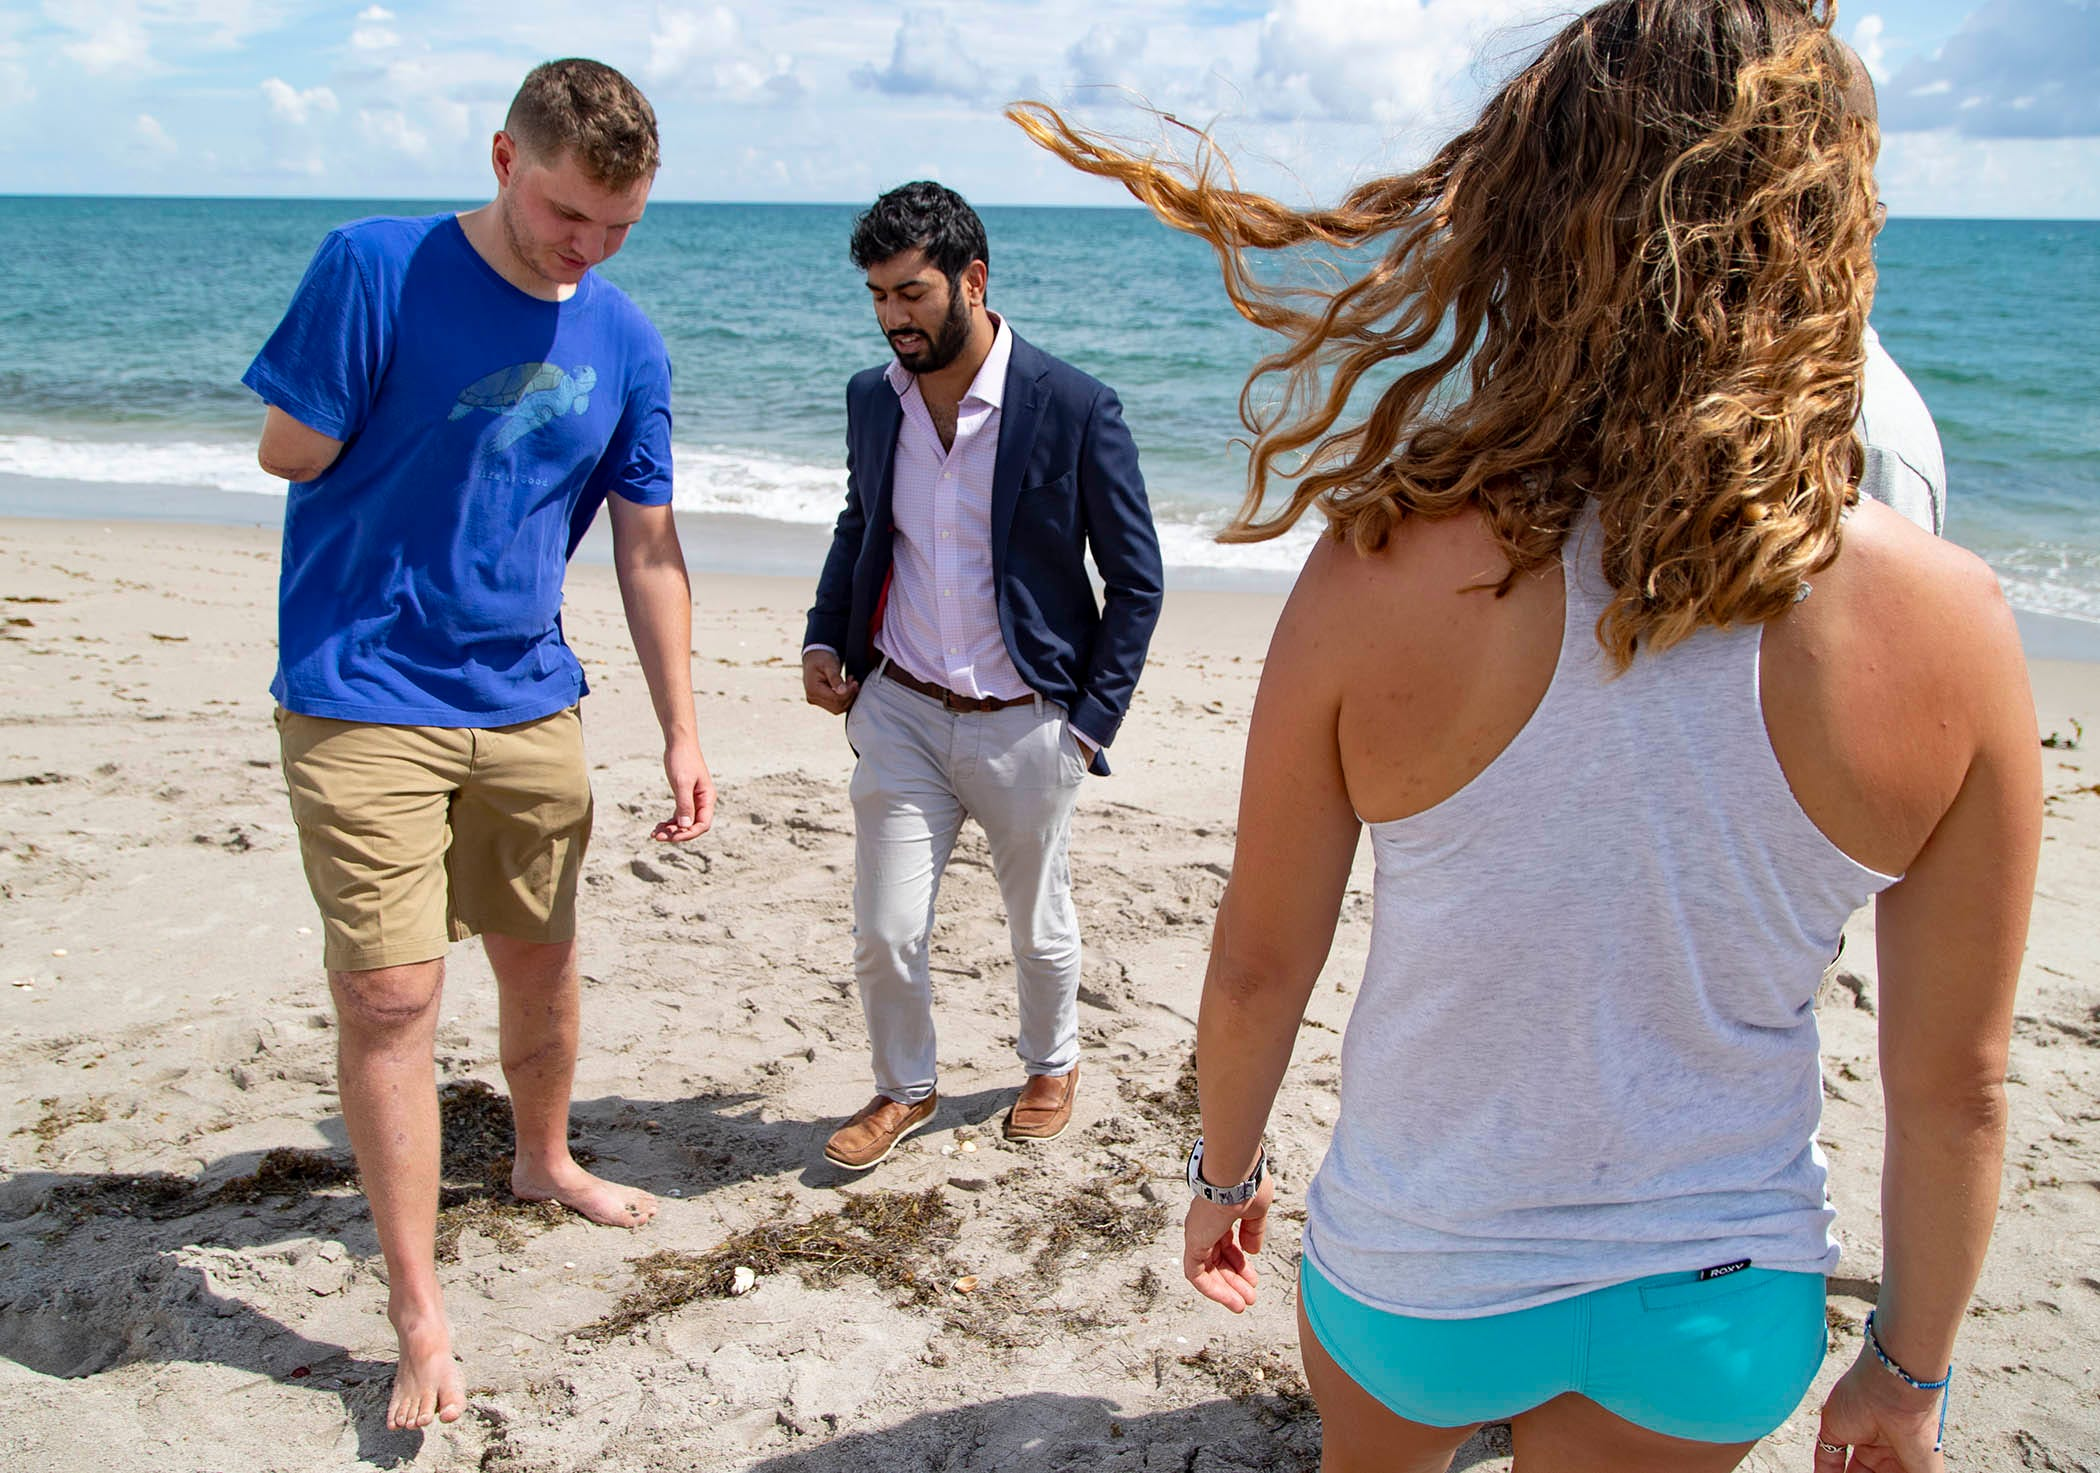 Carter Viss, the marine biologist who lost his arm when he was hit by a boat in the ocean while snorkeling last Thanksgiving Day, talks with orthopedic surgeon Dr. Dilhan Abeyewardene, who helped save Viss' legs after the accident. Viss reunited with some of the people who saved his life 10 months ago including Christine Raininger, right, who came to his rescue in the sea.